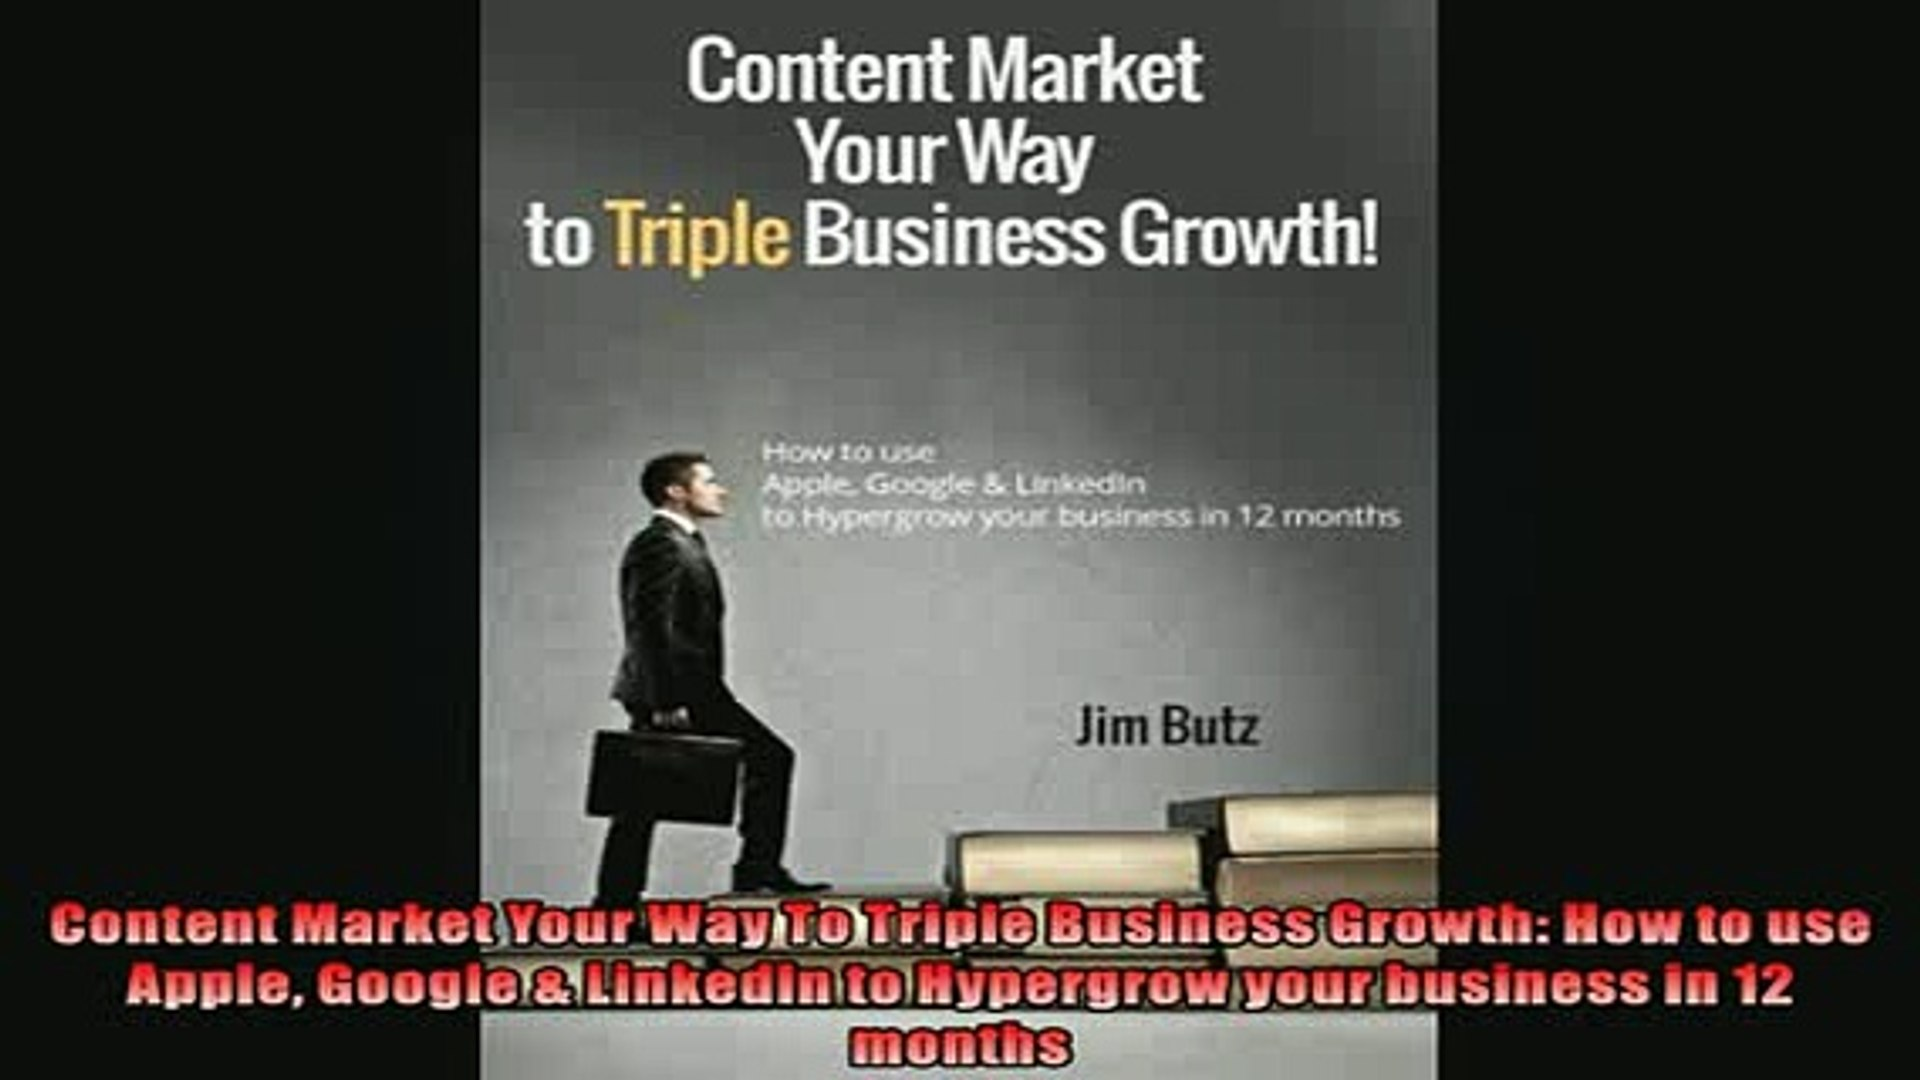 FREE DOWNLOAD  Content Market Your Way To Triple Business Growth How to use Apple Google  LinkedIn to READ ONLINE